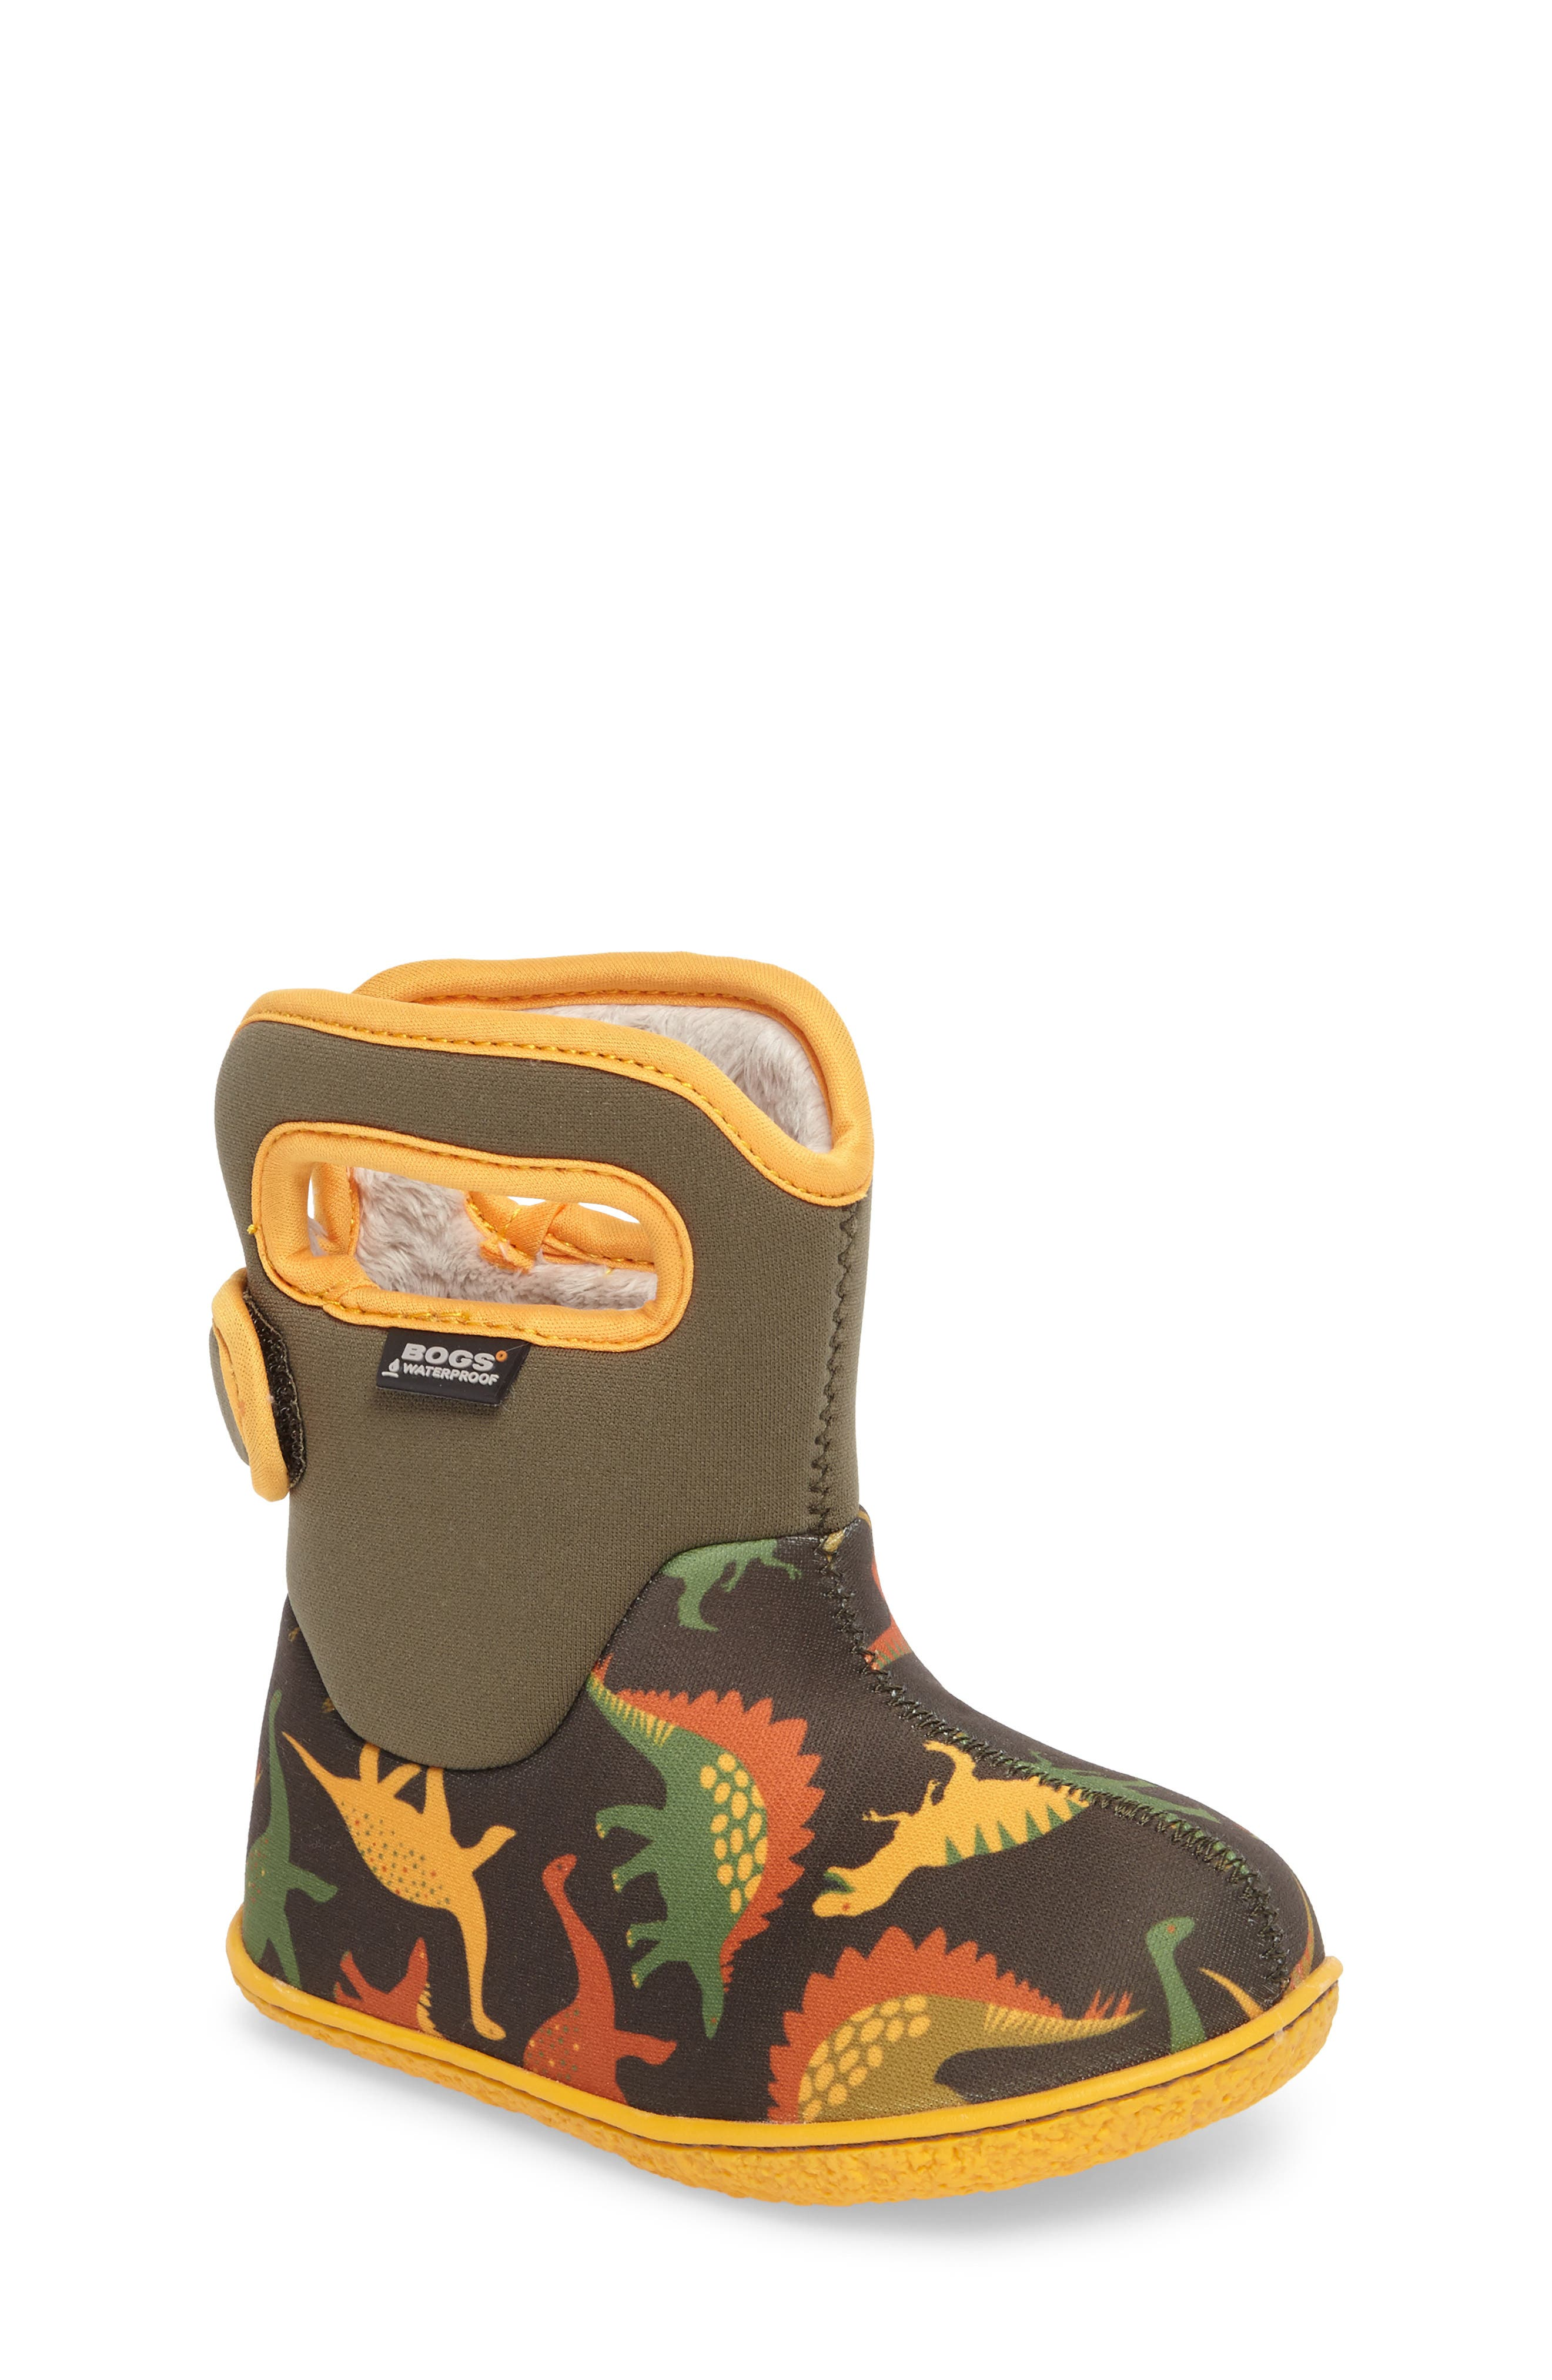 Baby Bog Classic Dino Insulated Waterproof Boot,                             Main thumbnail 1, color,                             356